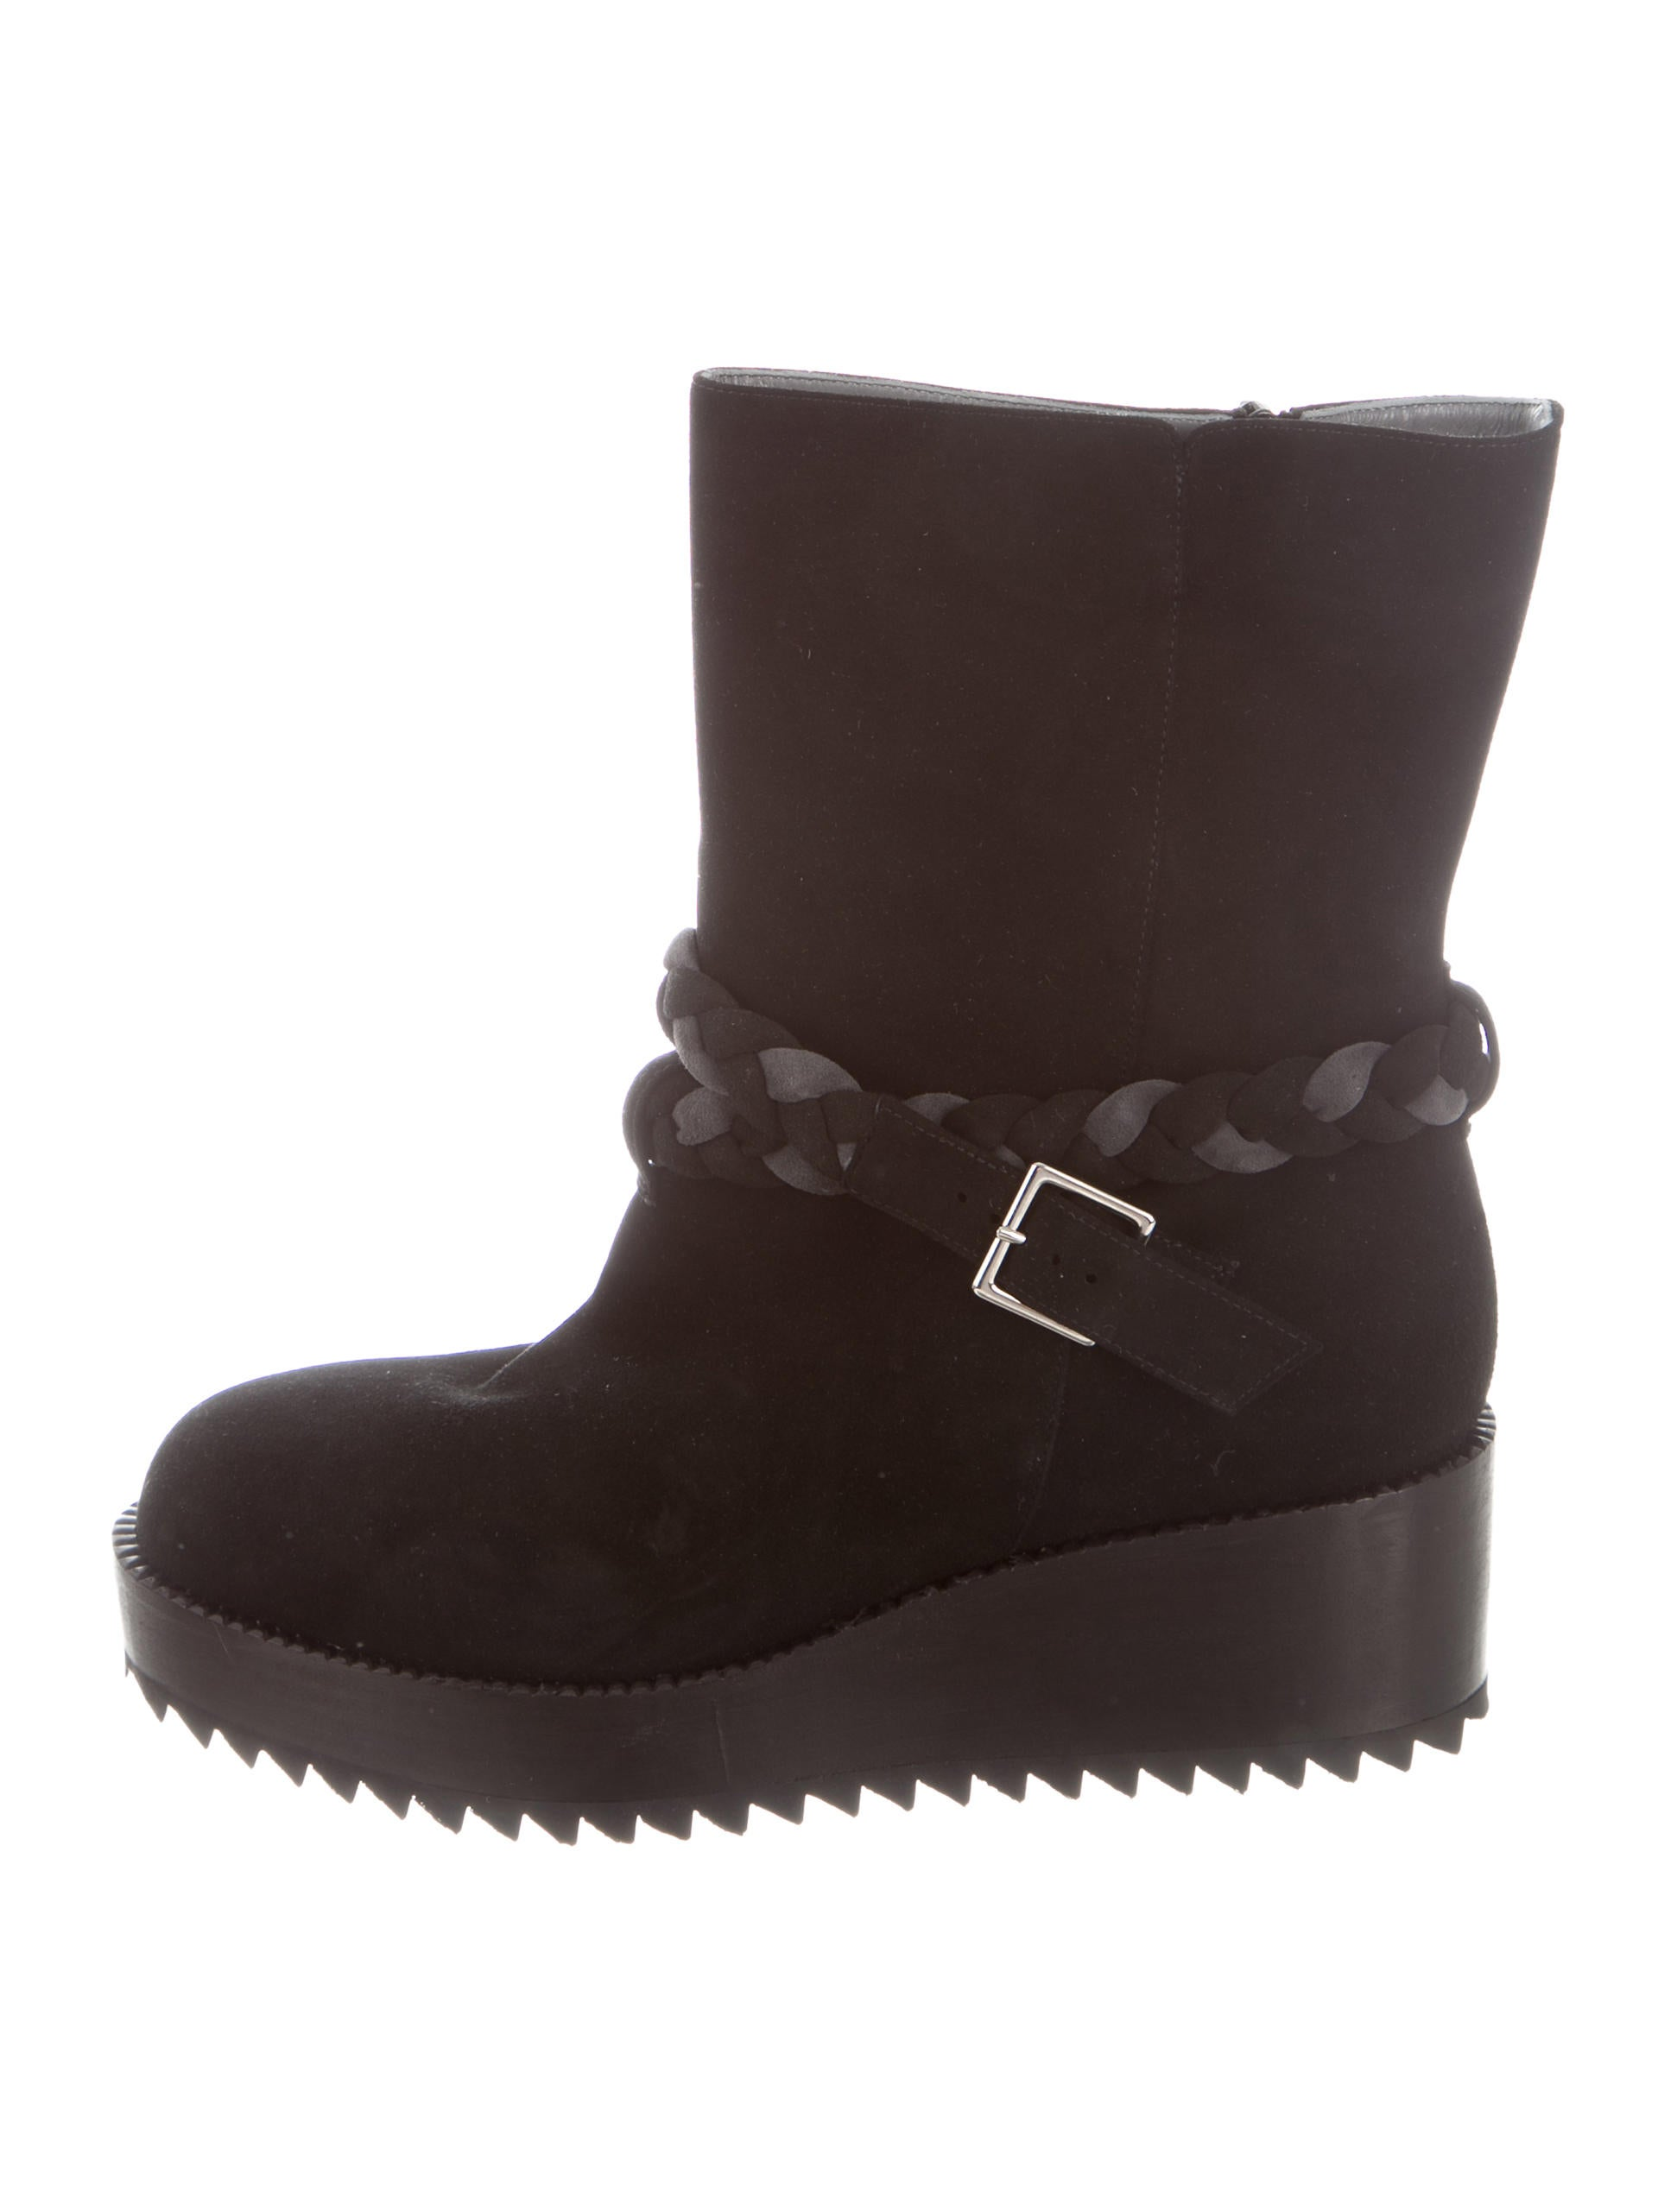 sale shop offer Ritch Erani NYFC Suede Wedge Boots w/ Tags buy cheap best seller sXPKYQ